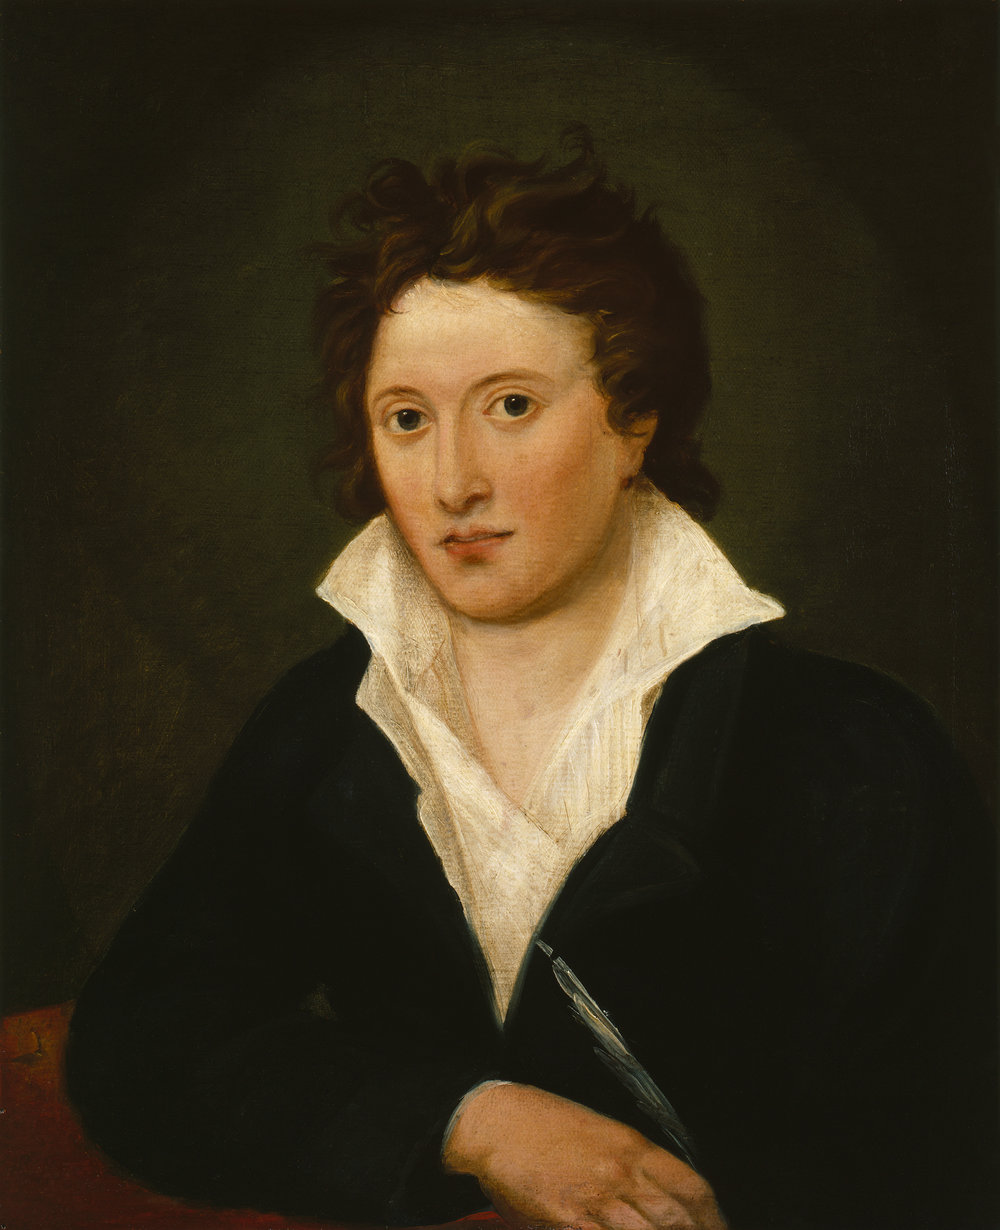 Percy Shelley by Amelia Curran. National Portrait Gallery.